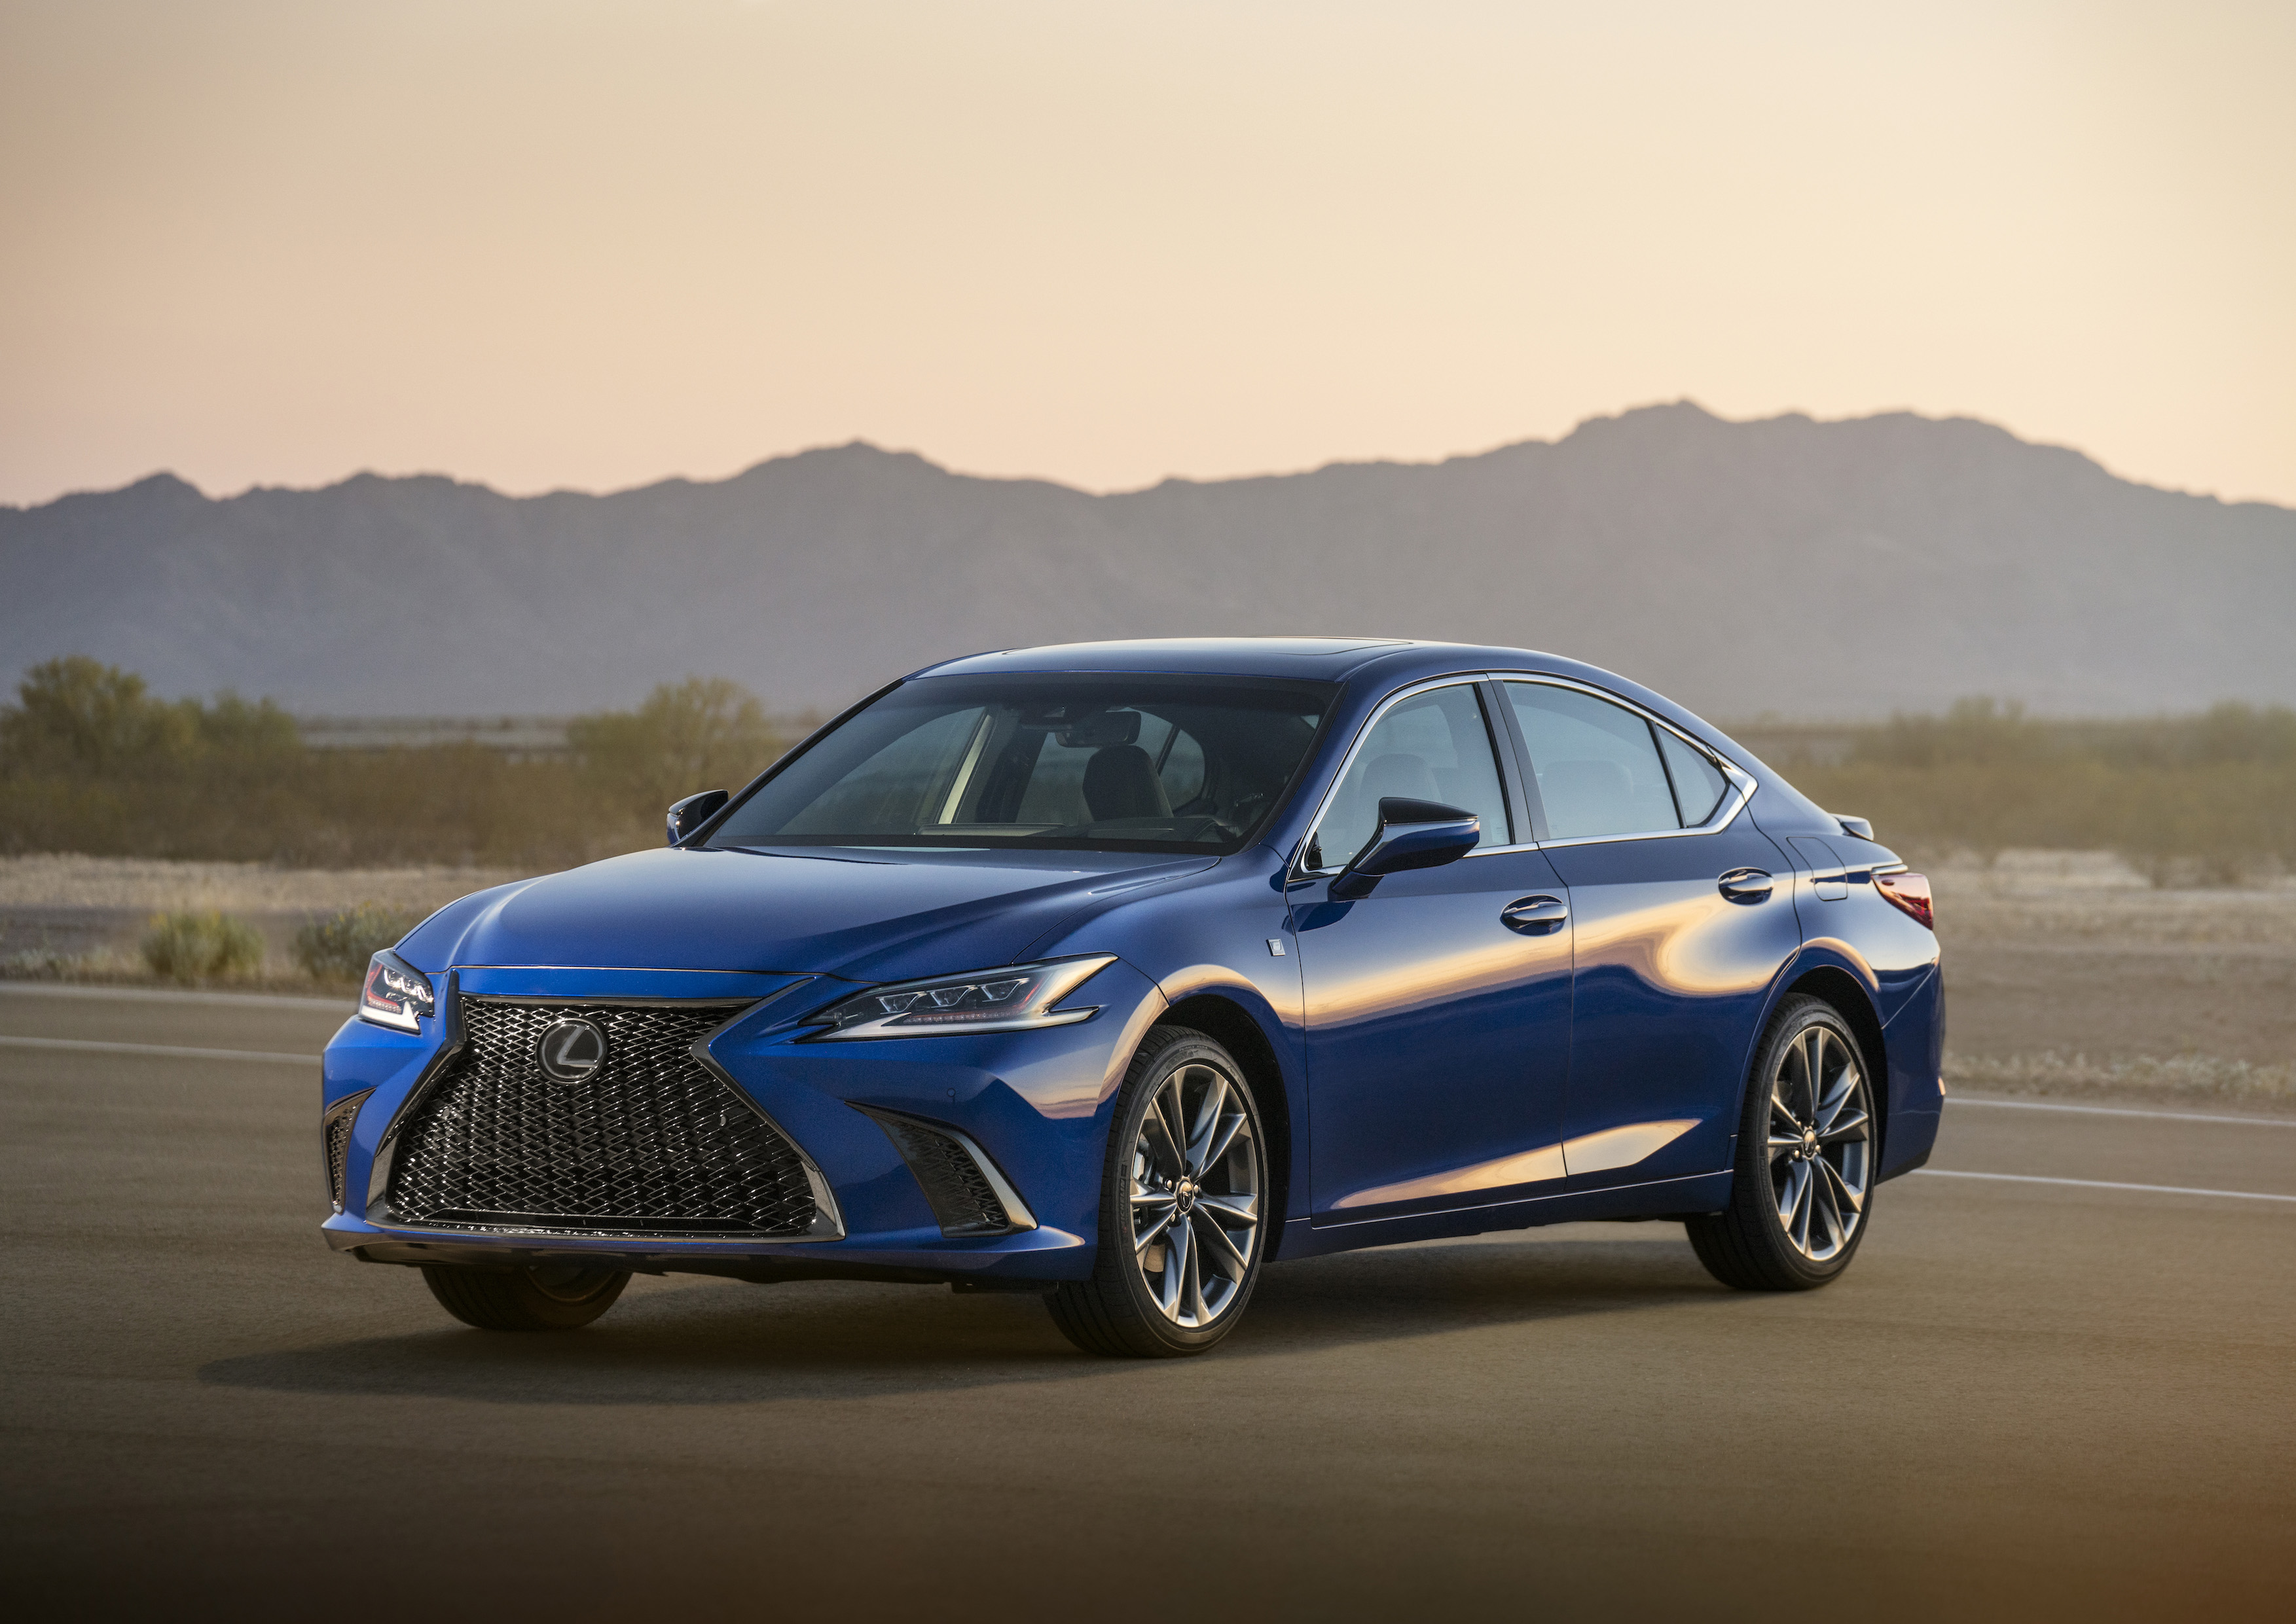 2019 Lexus Es 350 Ultra Lux The Times